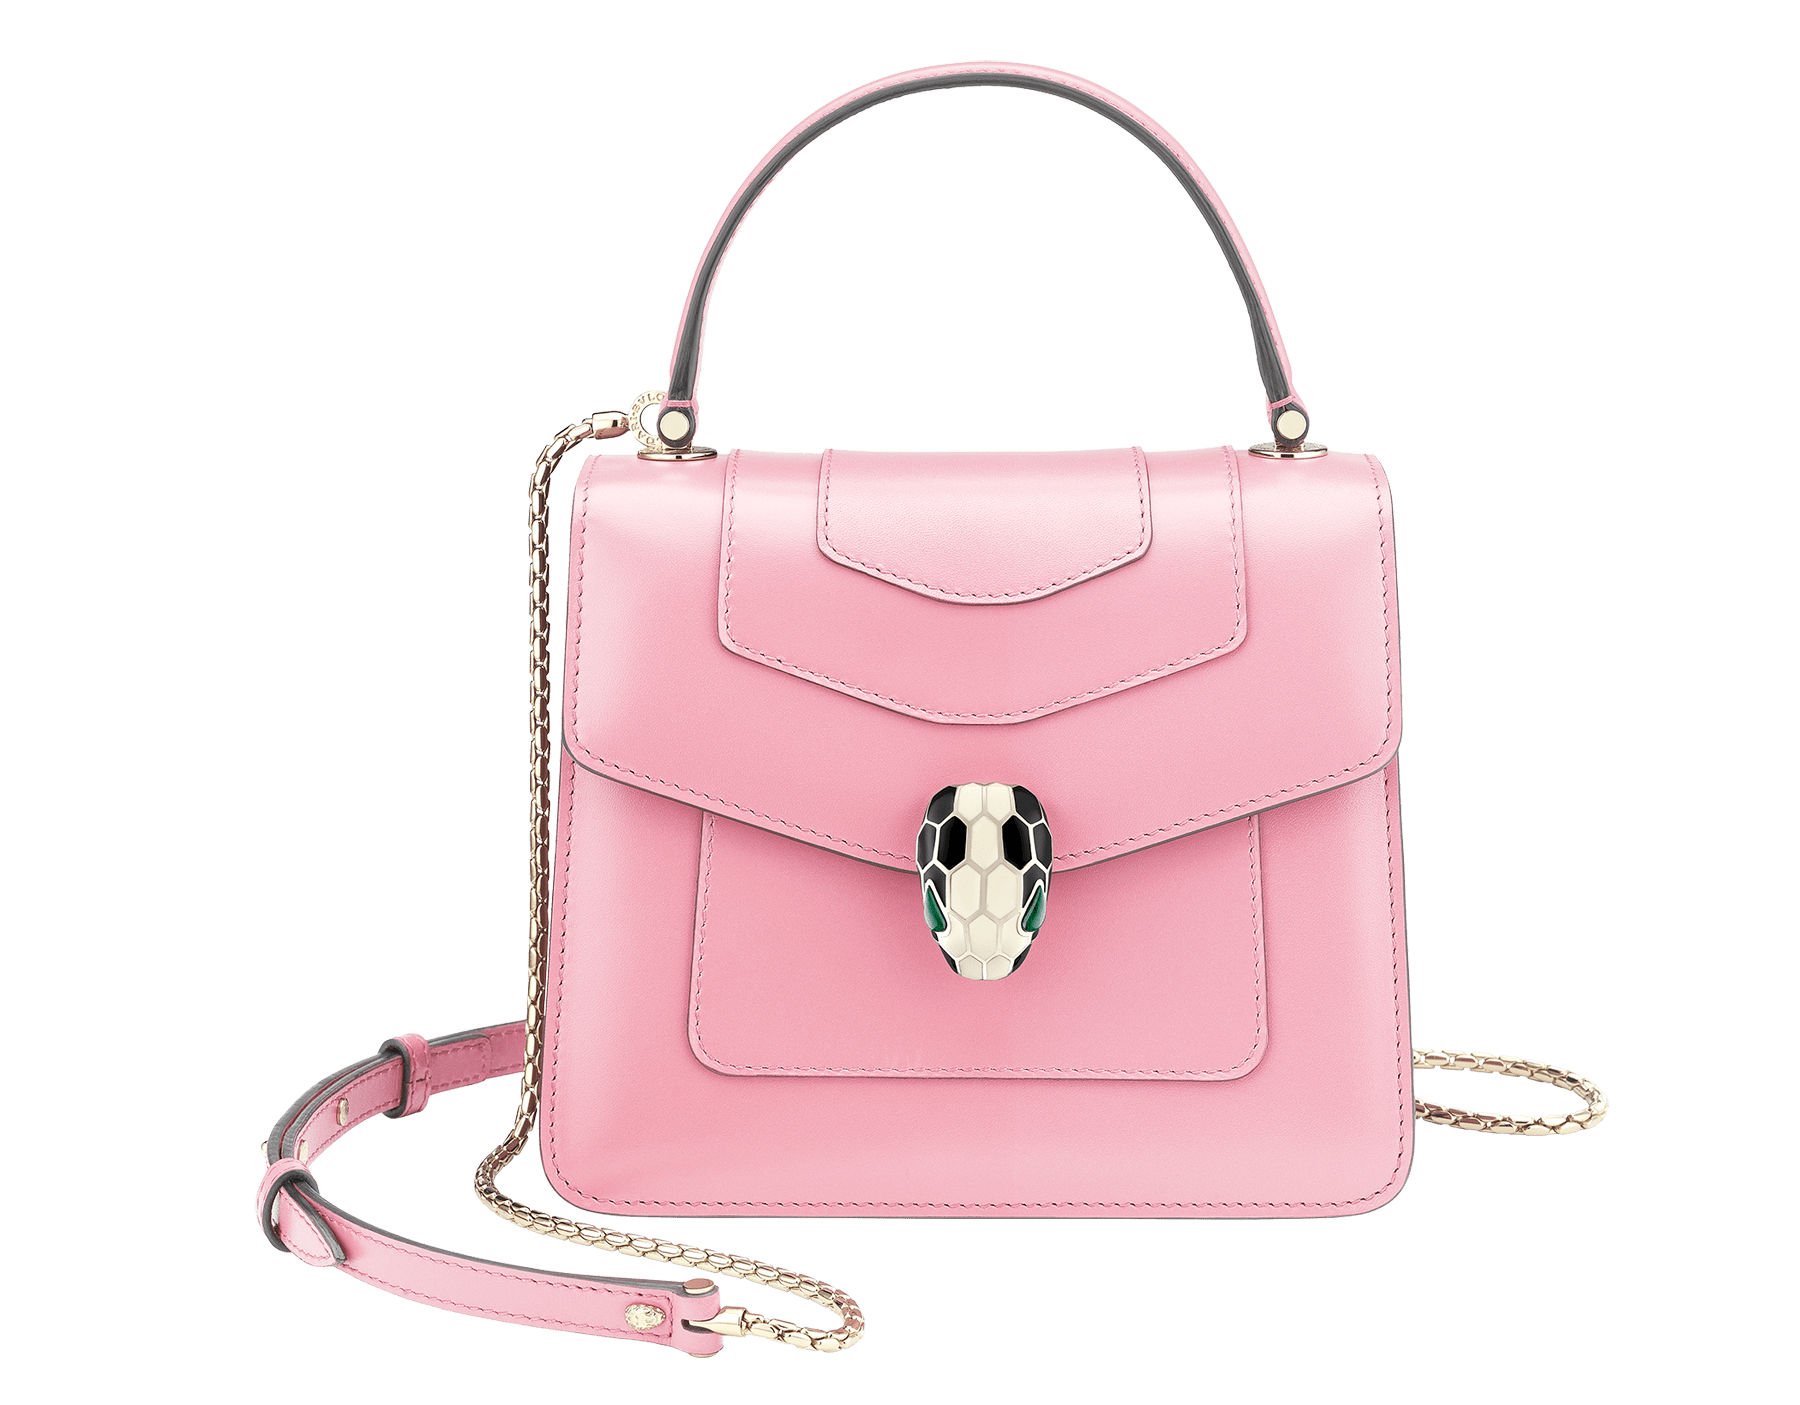 """Serpenti Forever"" crossbody bag in flamingo quartz calf leather. Iconic snakehead closure in light gold plated brass enriched with black and white enamel and green malachite eyes. 287968 image 1"